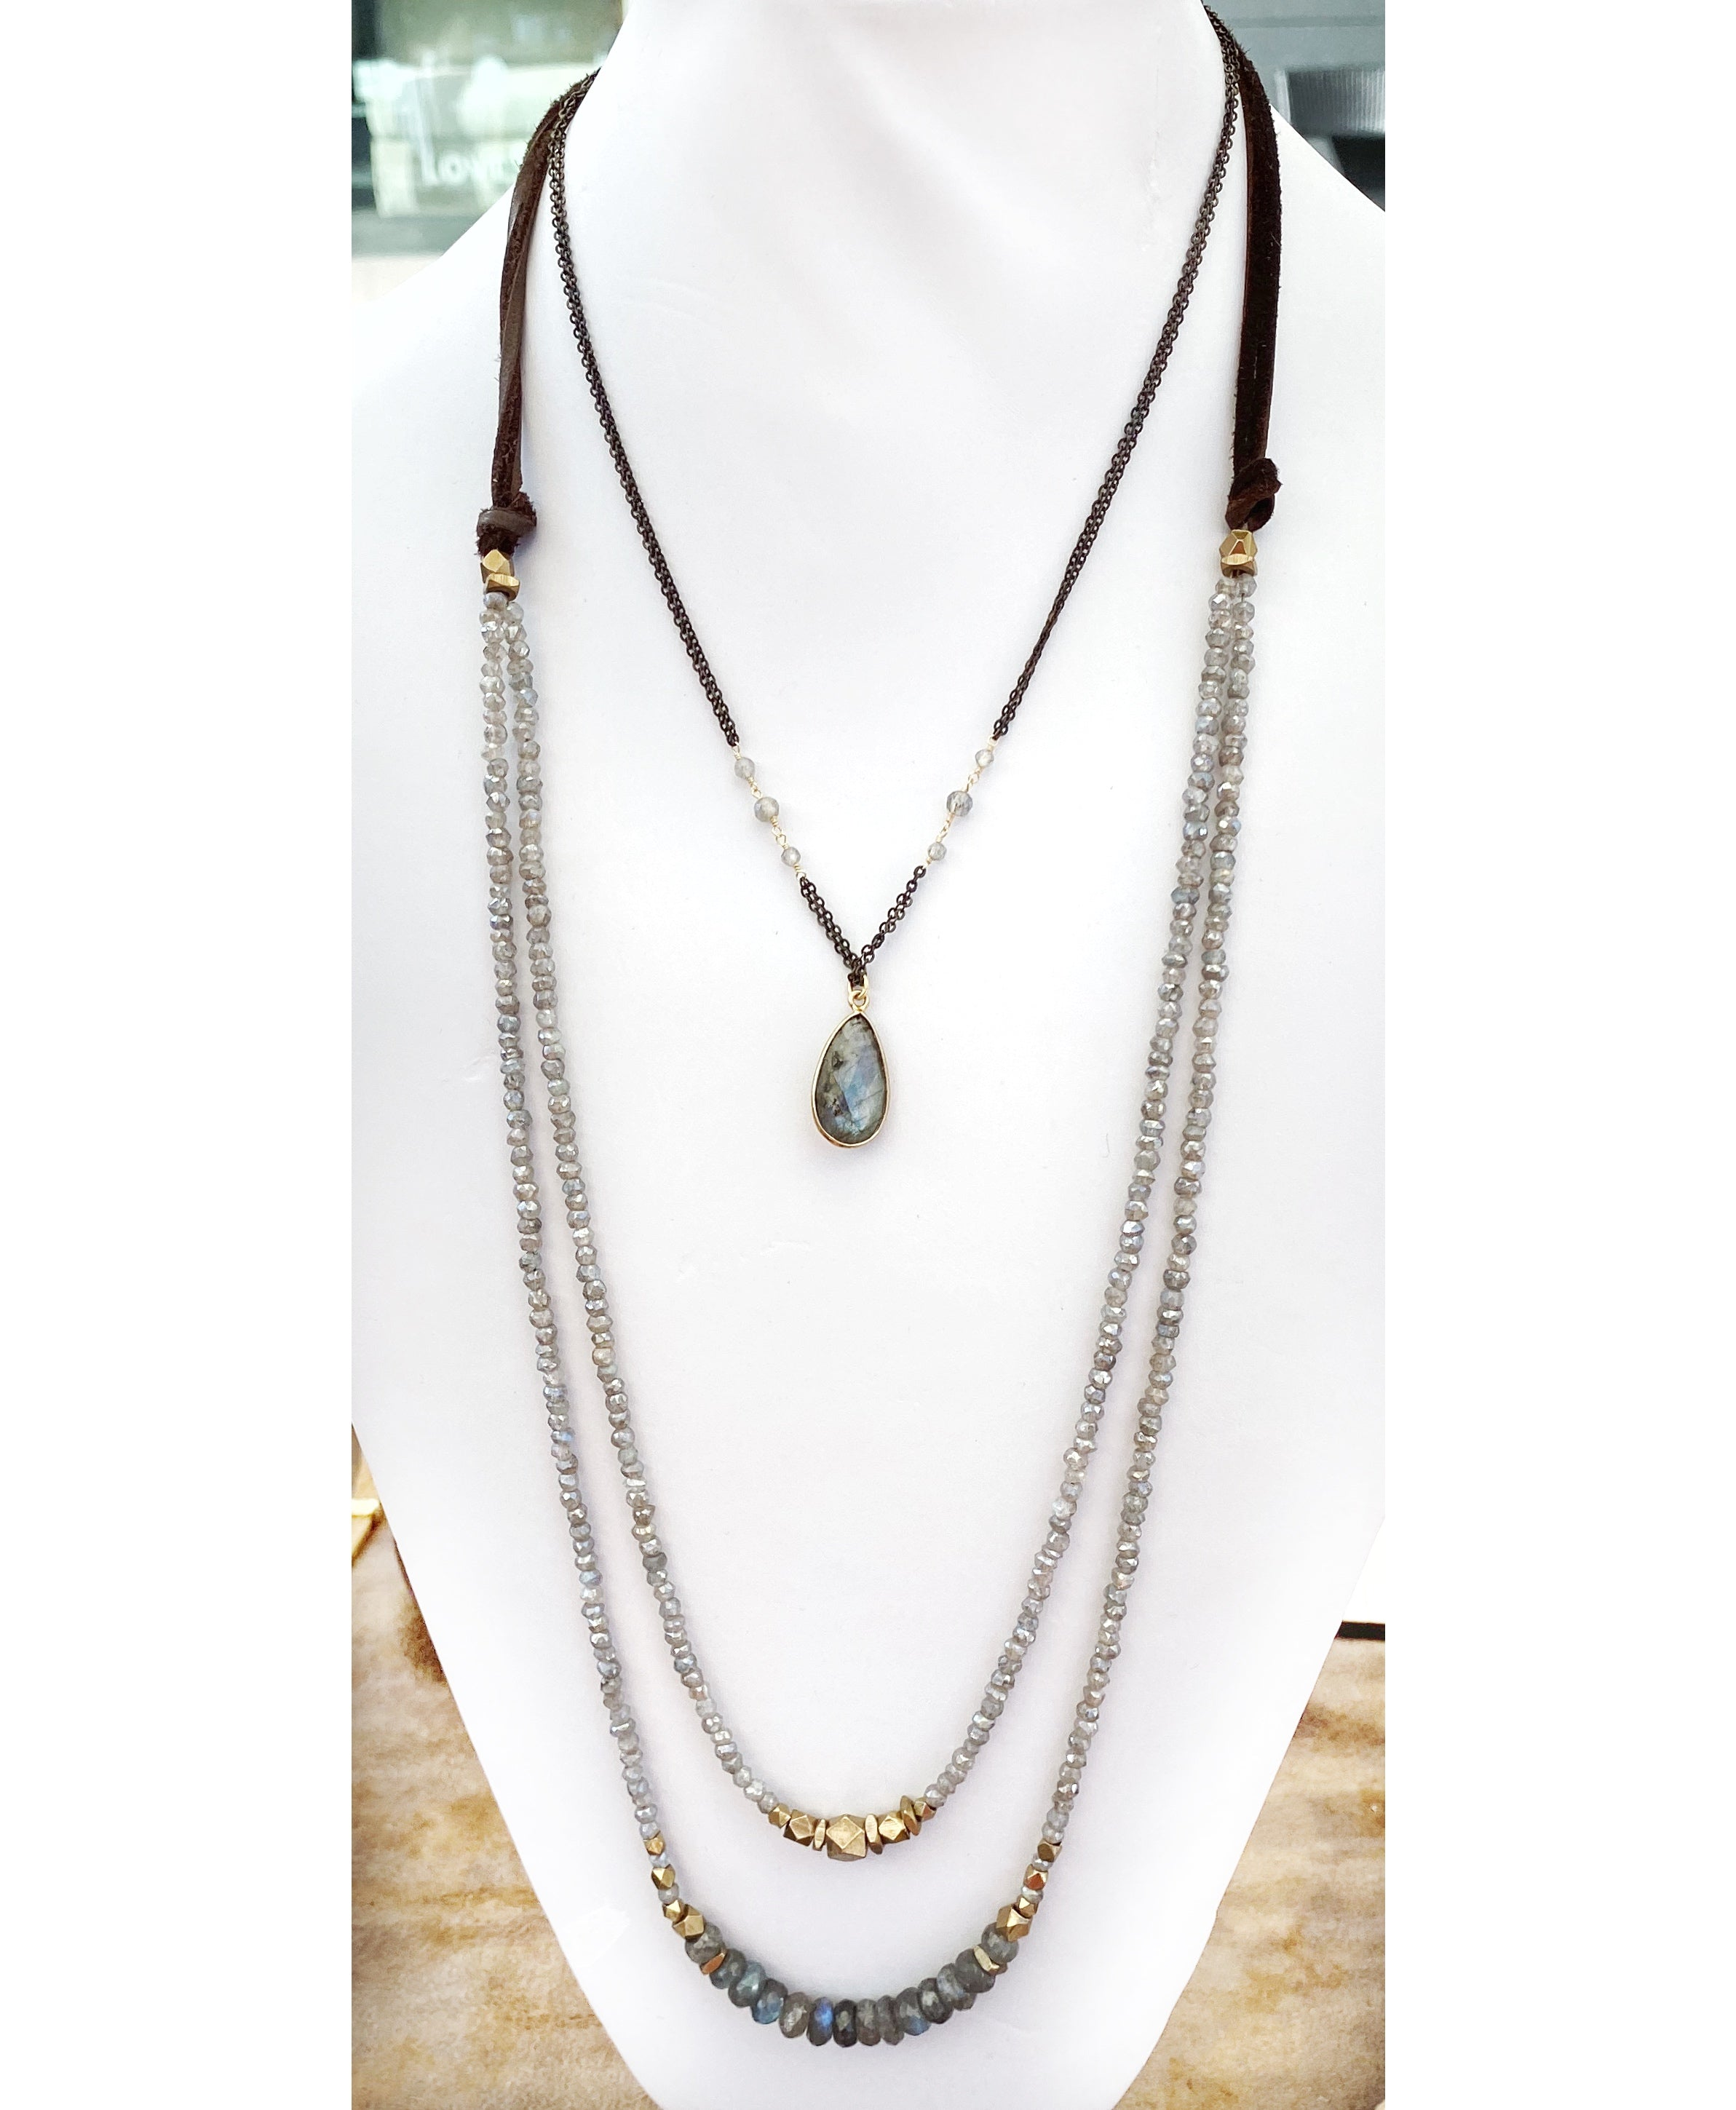 Valley View Pendant Necklace Labradorite